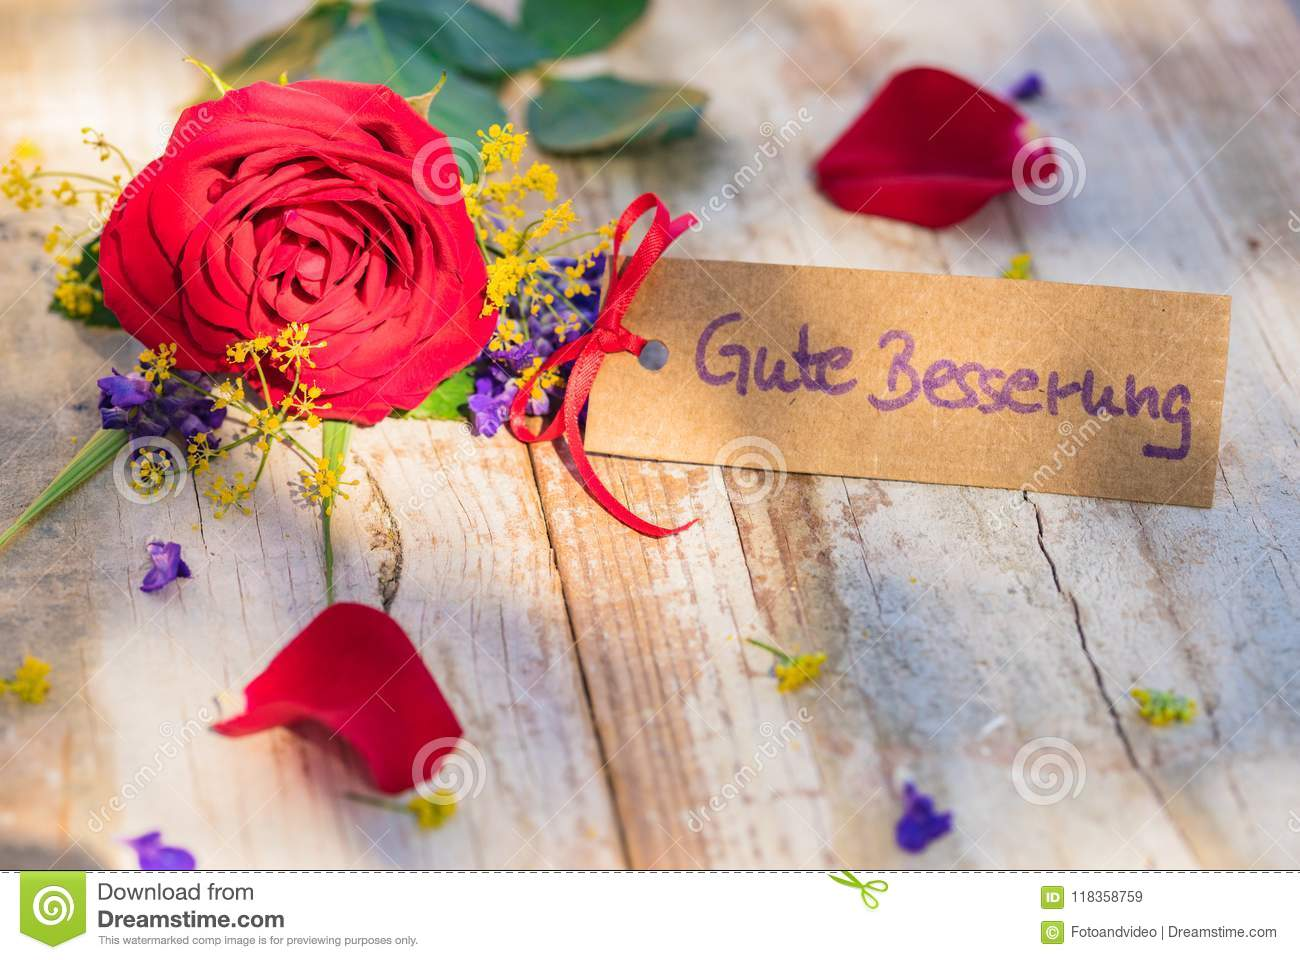 Flowers And Card With German Text Gute Besserung Means Get Well Soon Stock Image Image Of Card Soon 118358759